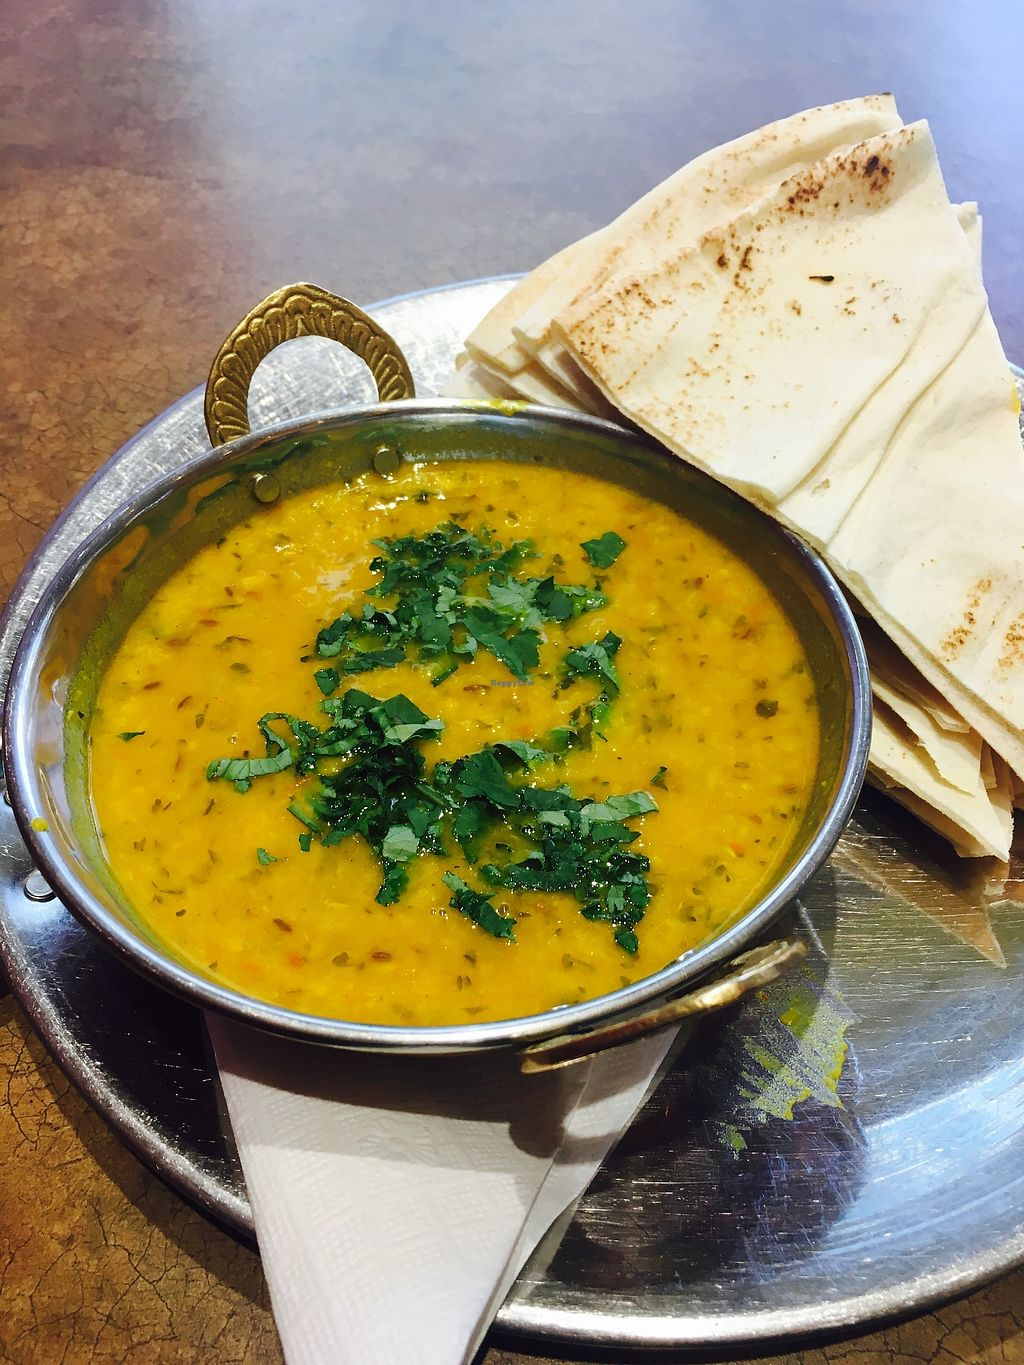 """Photo of Remedy Cafe - Downtown  by <a href=""""/members/profile/yegtina"""">yegtina</a> <br/>Lentil Dahl  <br/> January 3, 2018  - <a href='/contact/abuse/image/43481/342389'>Report</a>"""